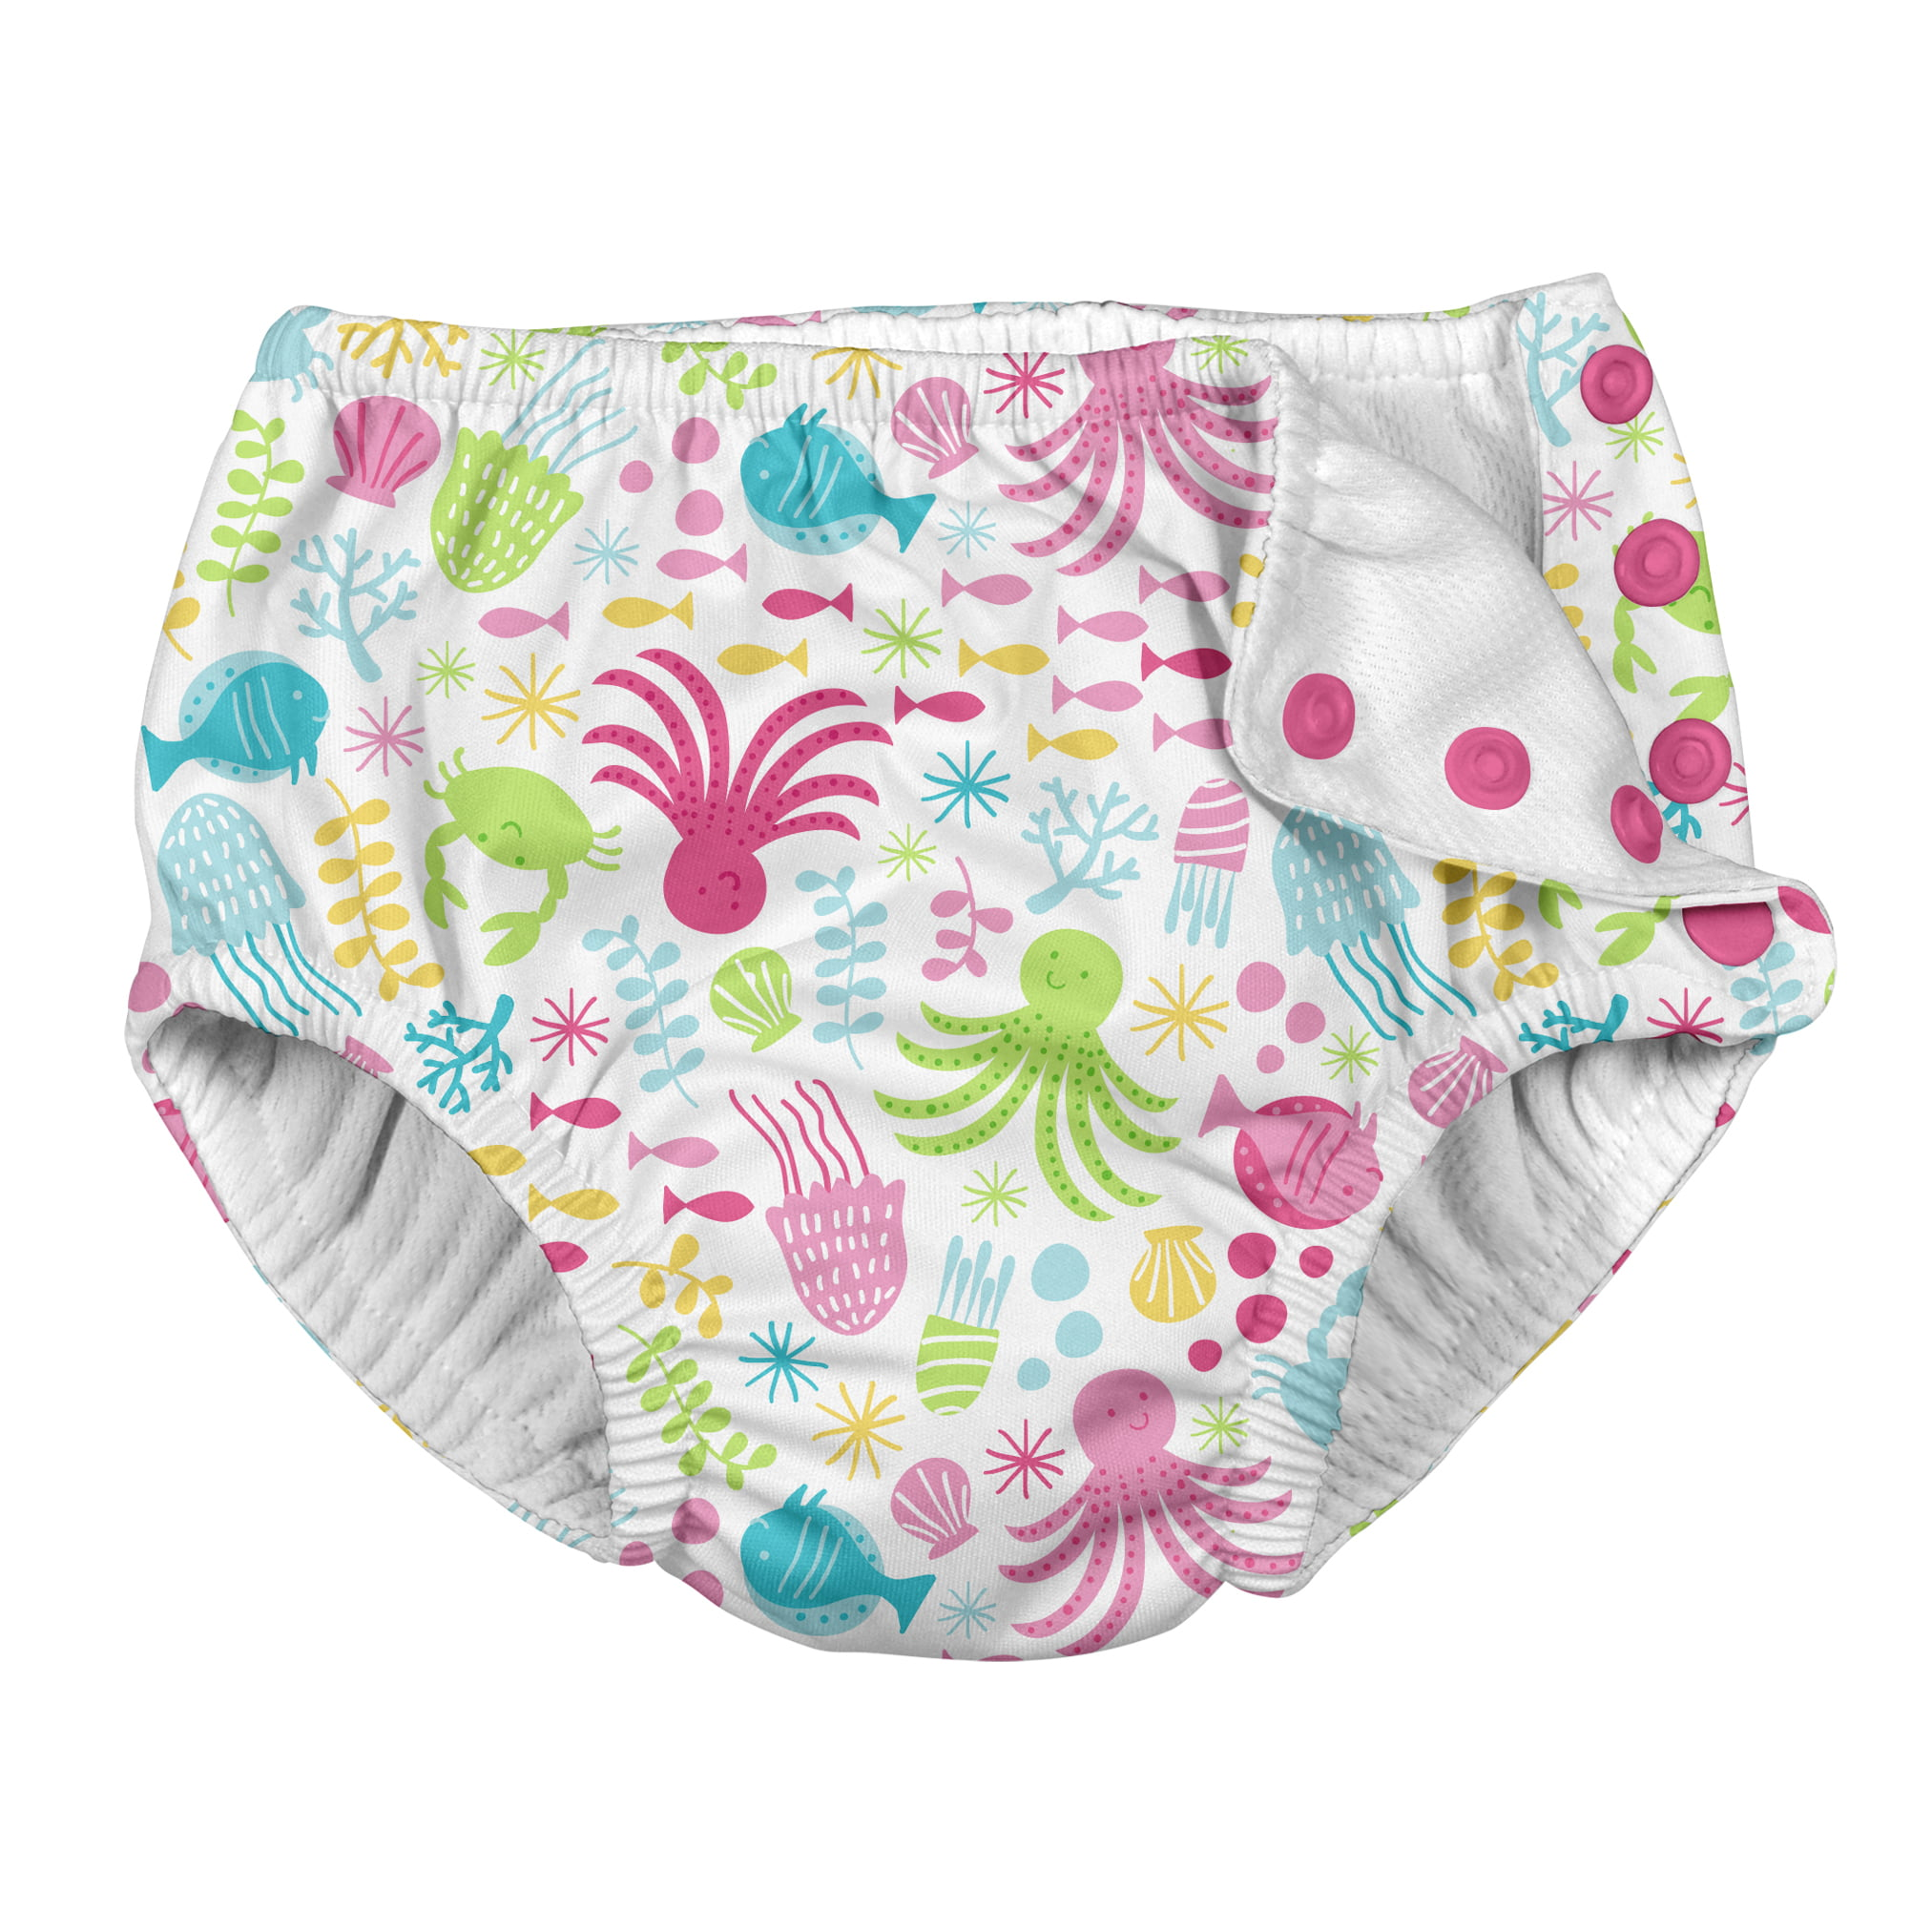 i play 4T by green sprouts Baby Toddler Girls Snap Reusable Absorbent Swimsuit Diaper White Sea Pals